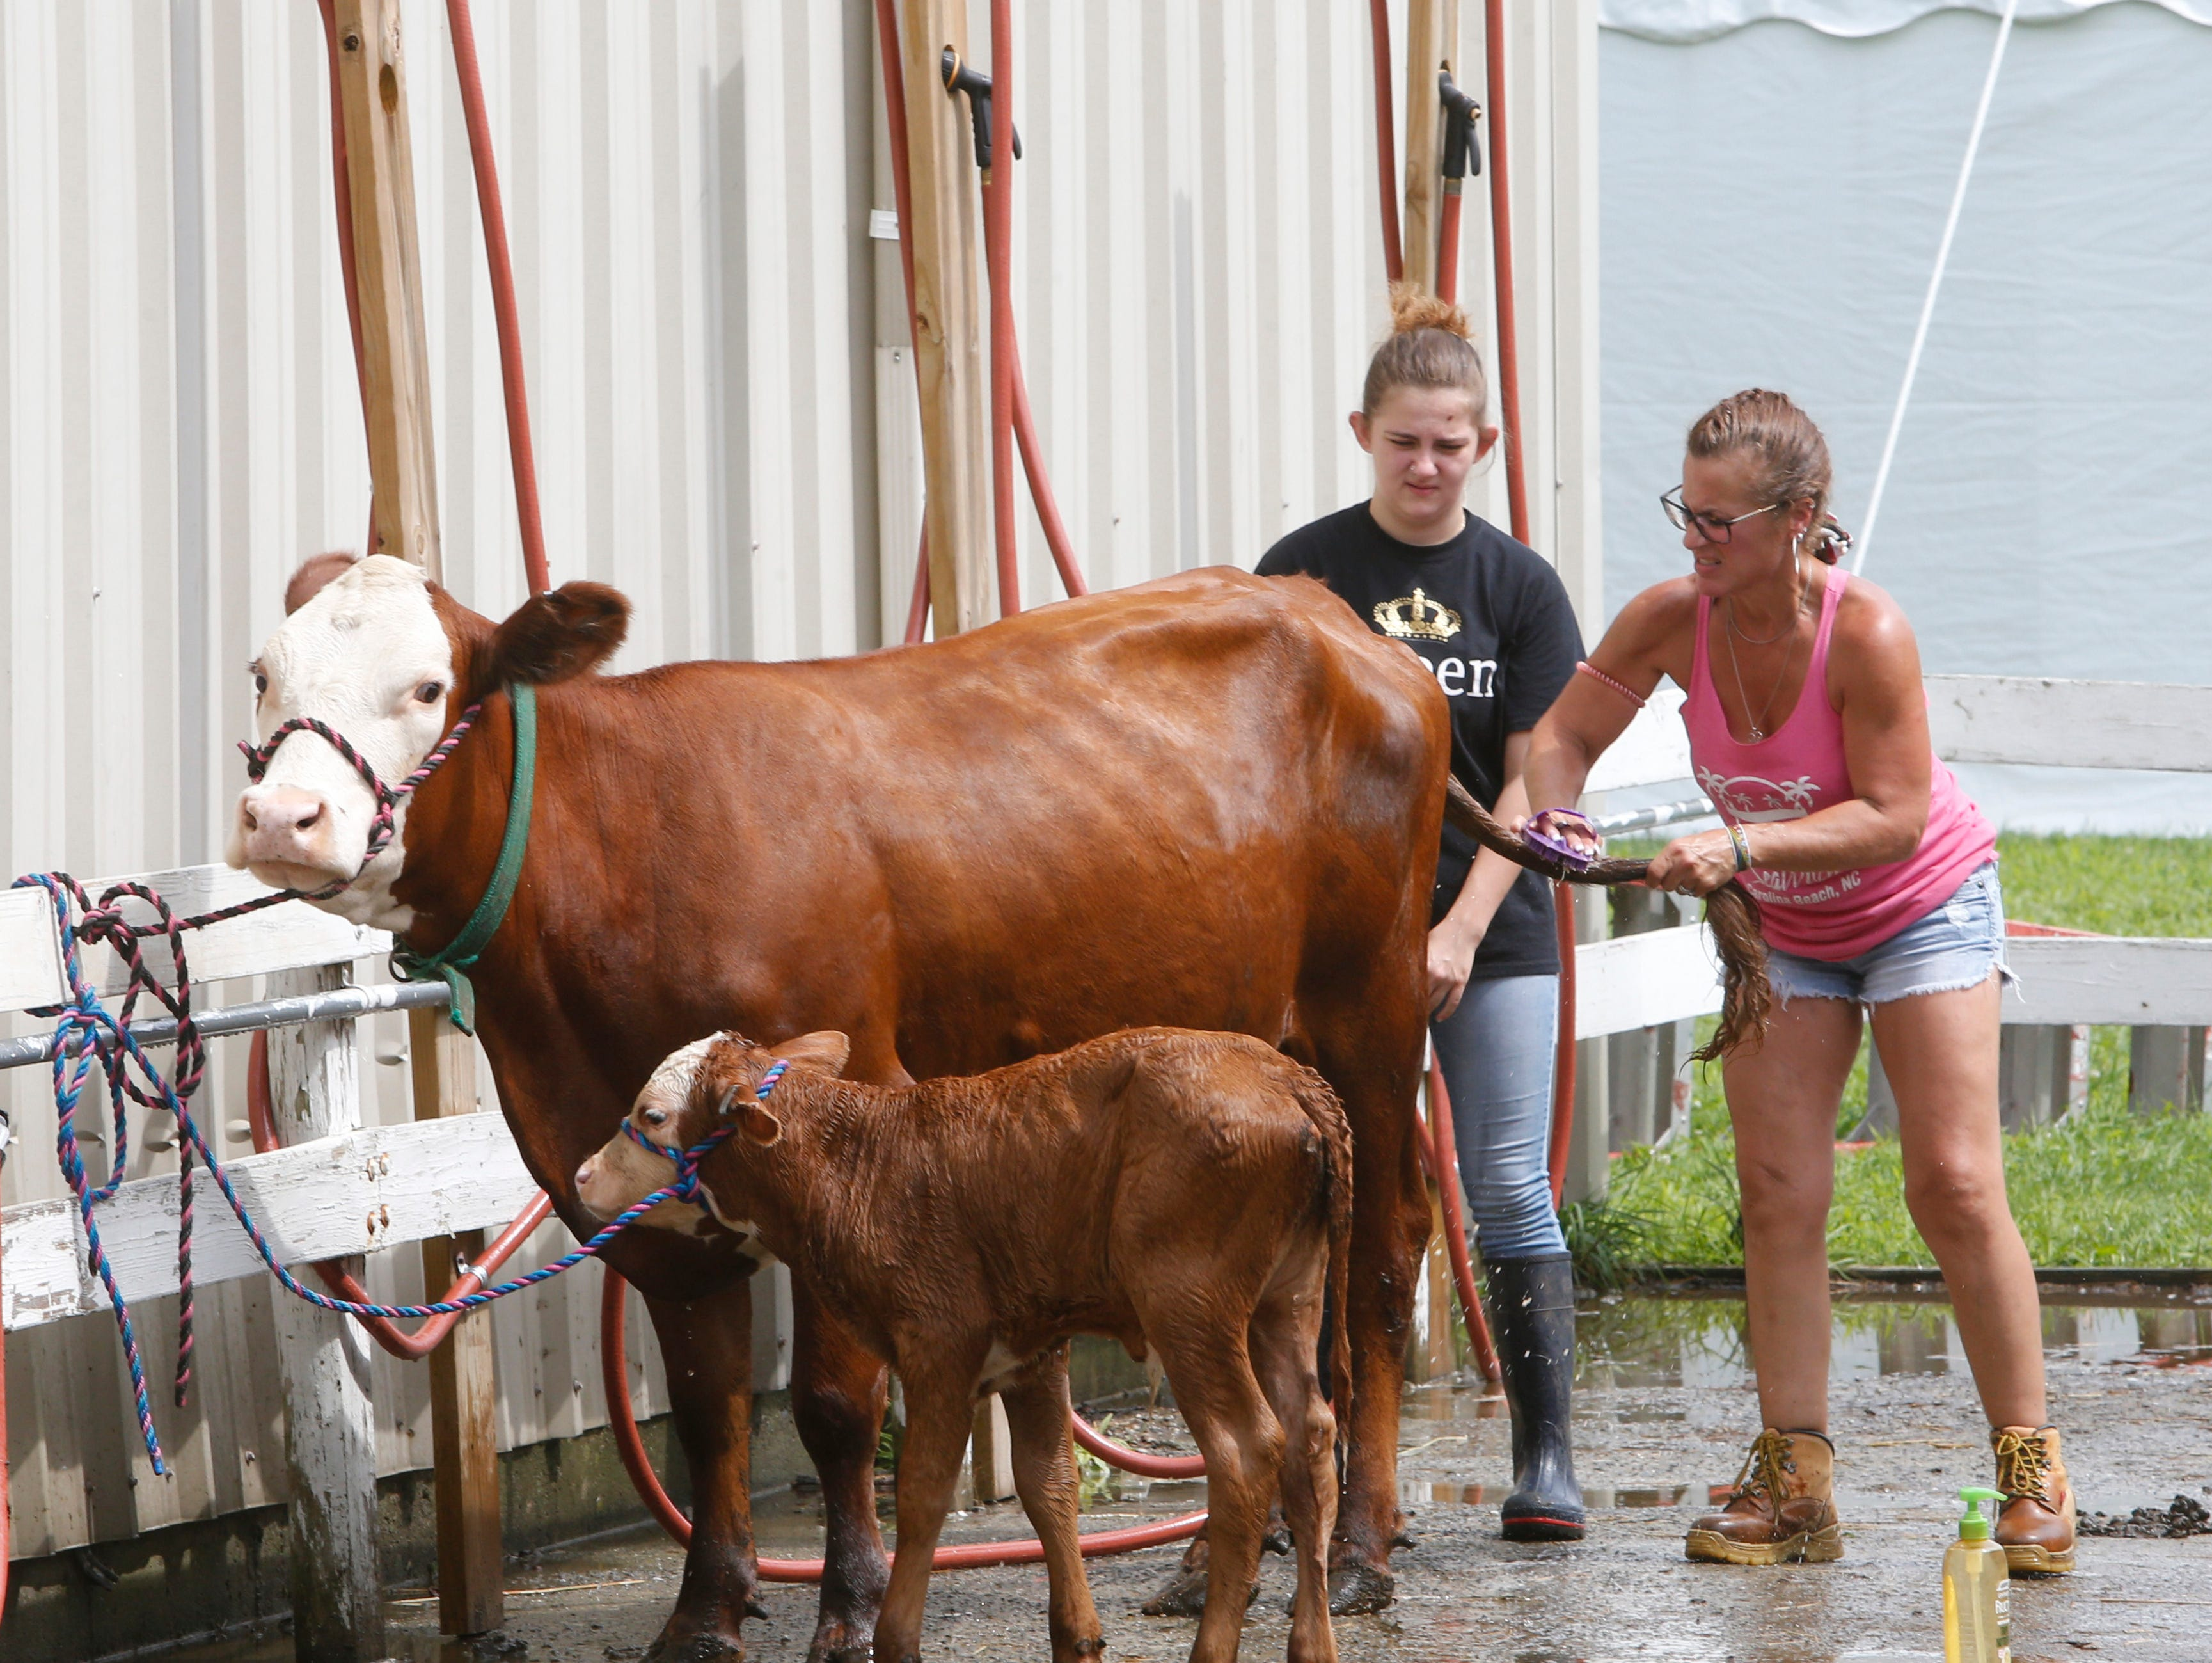 From left, Jessica Amato of Saugerties and Kathaleen Woolsey of New Paltz clean a cow and her calf during the Ulster County Fair in New Paltz on July 31, 2018.